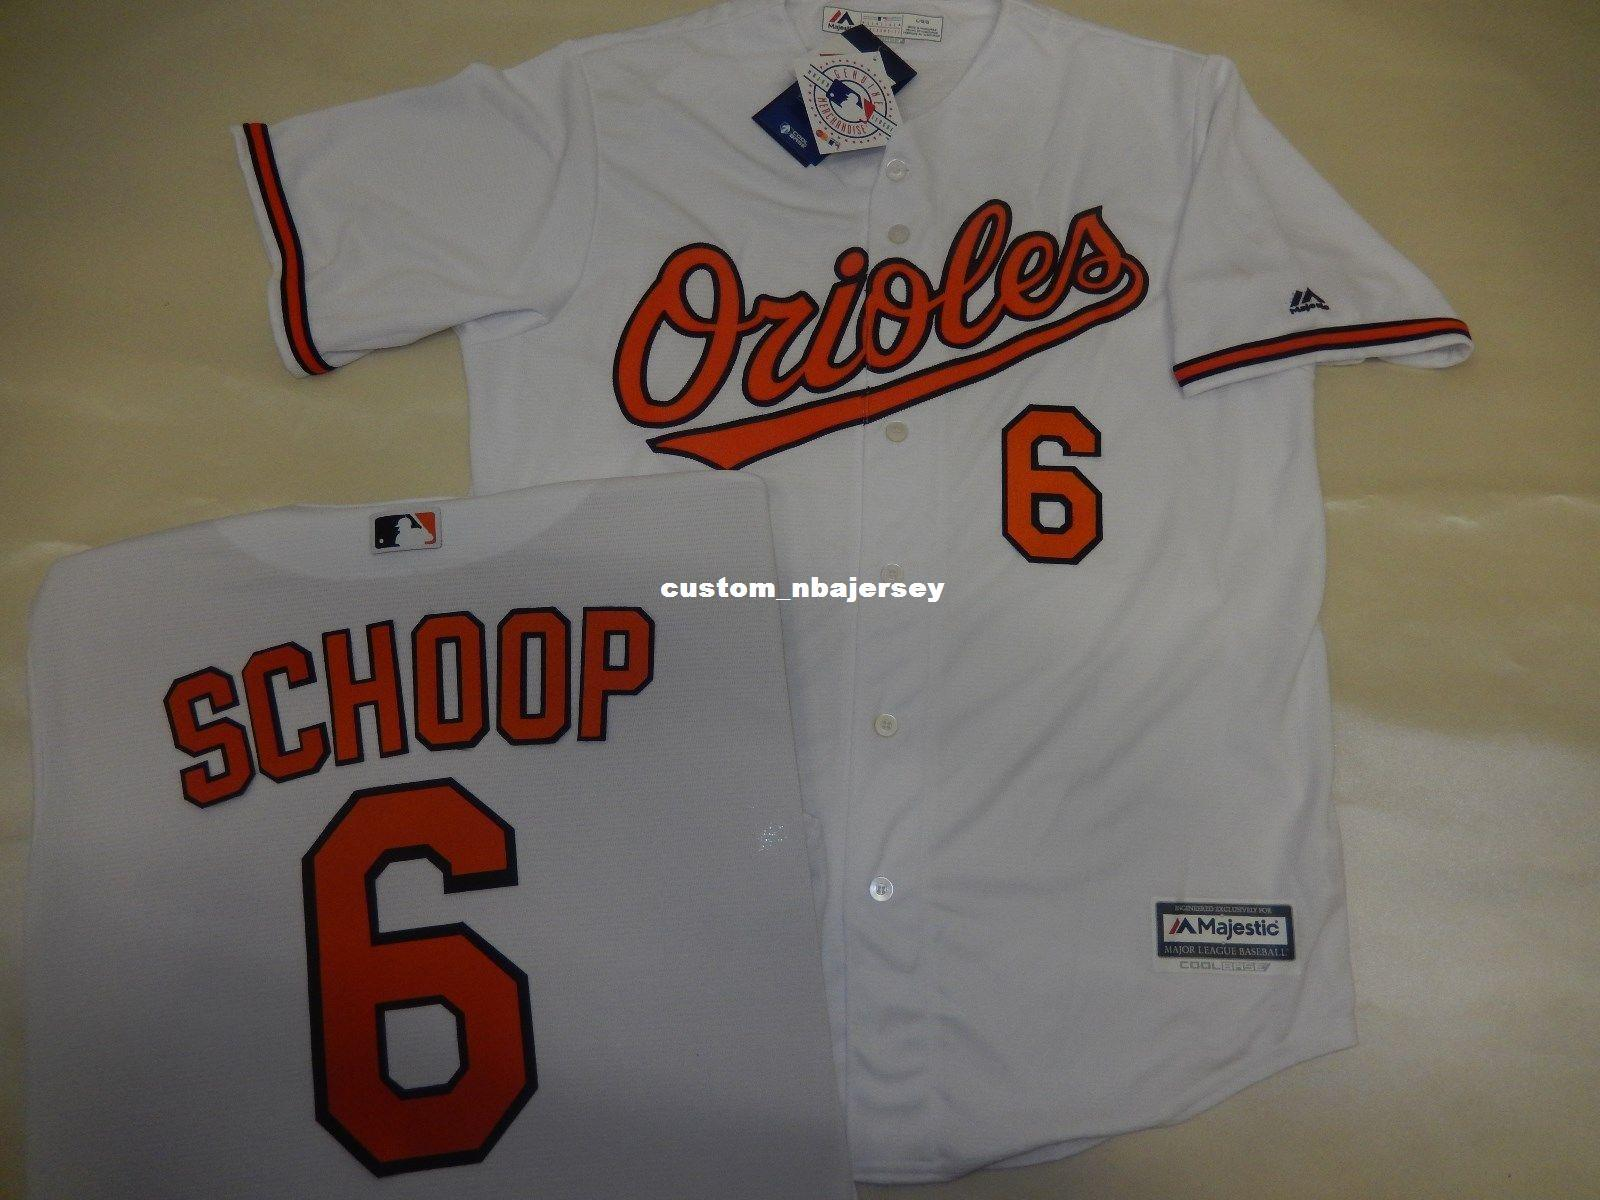 0572a36c4a85 2019 Cheap Custom JONATHAN SCHOOP Baseball JERSEY WHITE Stitched Customize  Any Name Number MEN WOMEN BASEBALL JERSEY XS 5XL From Custom nbajersey